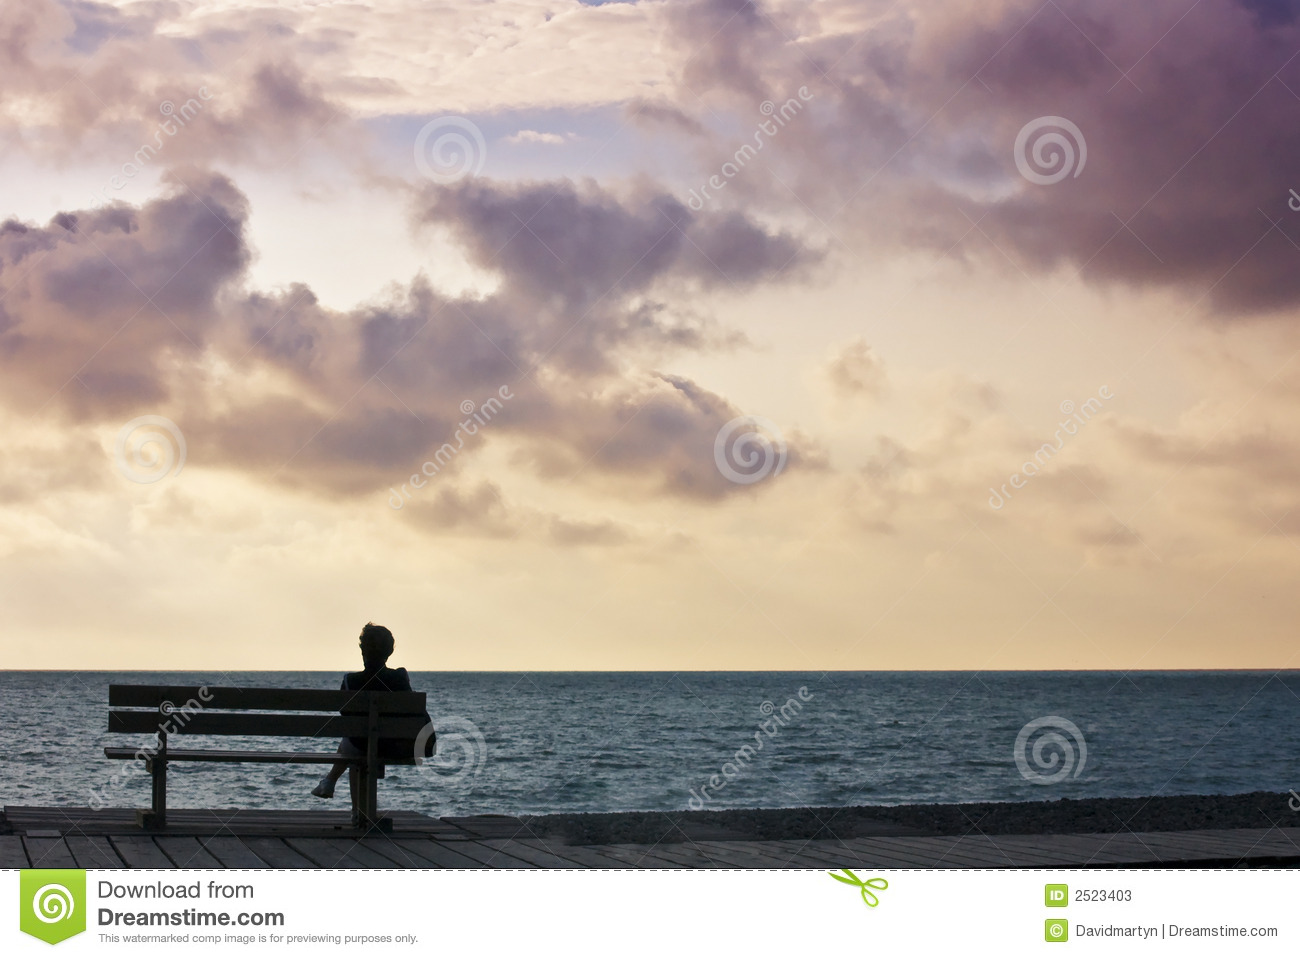 Girl Sitting Alone On Bench Woman sitting on bench looking